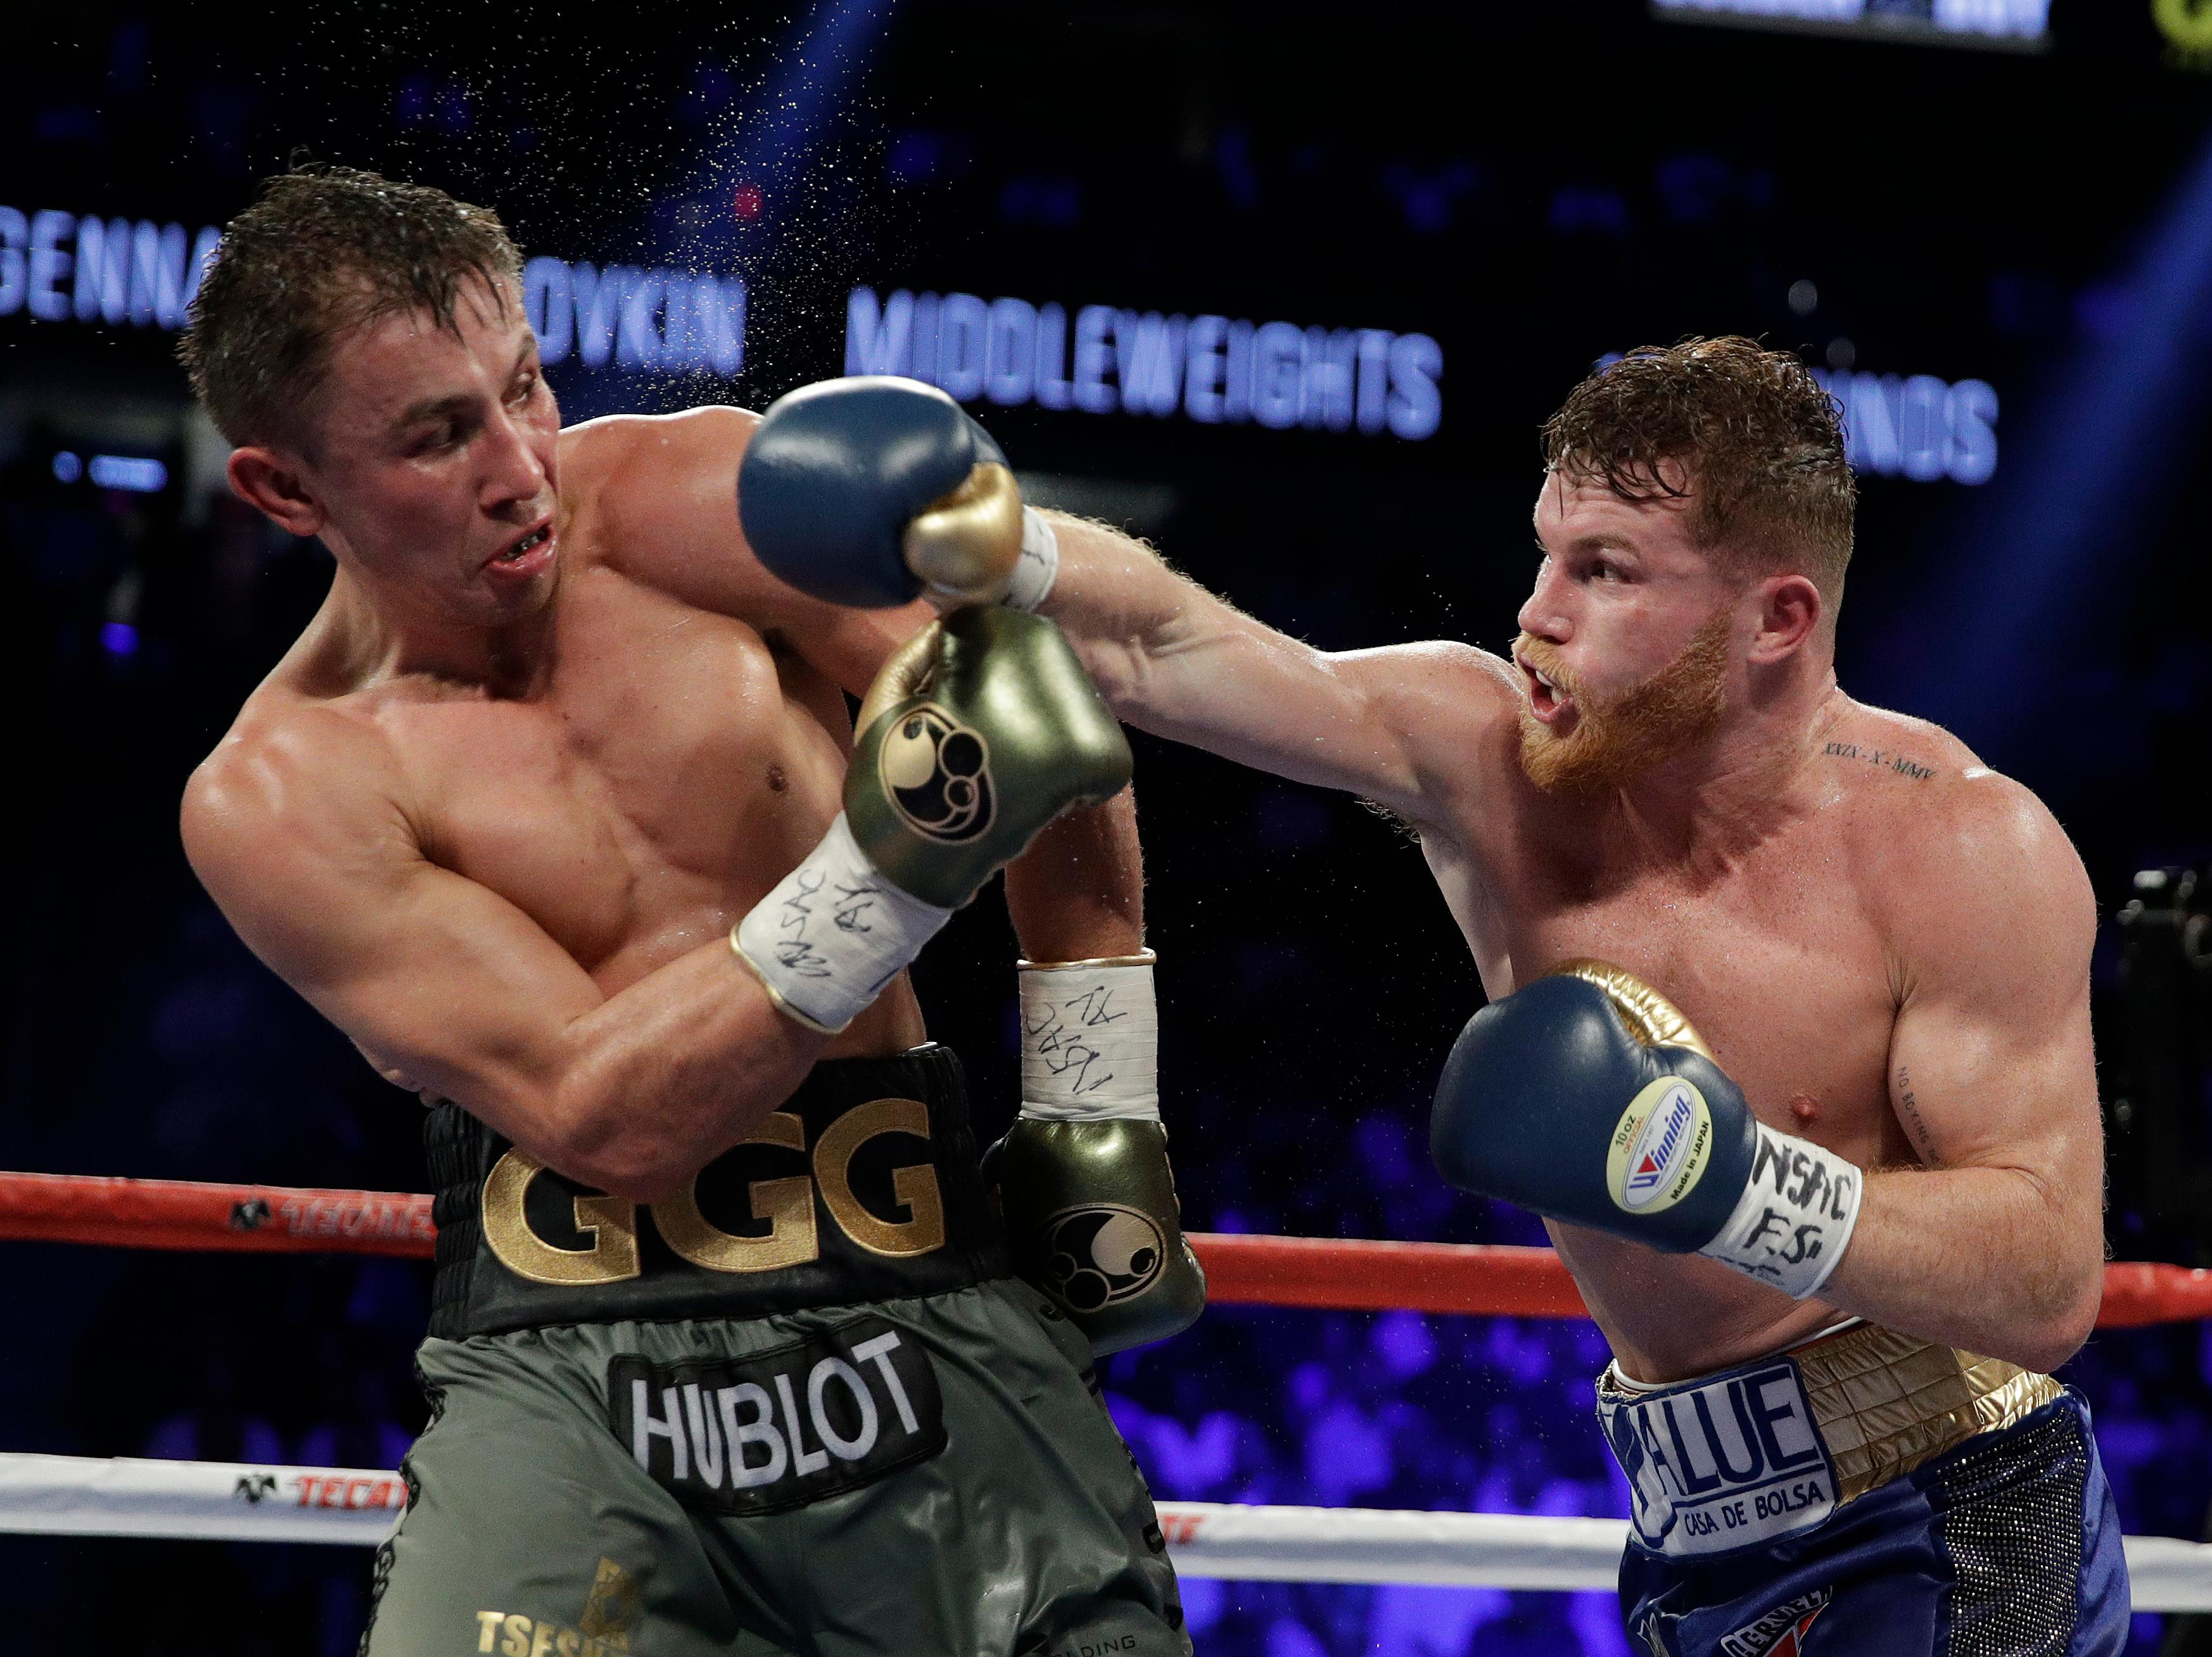 Last year's bout was controversially scored as a draw after one judge surprisingly marked his scorecard with a 118-110 victory for Alvarez